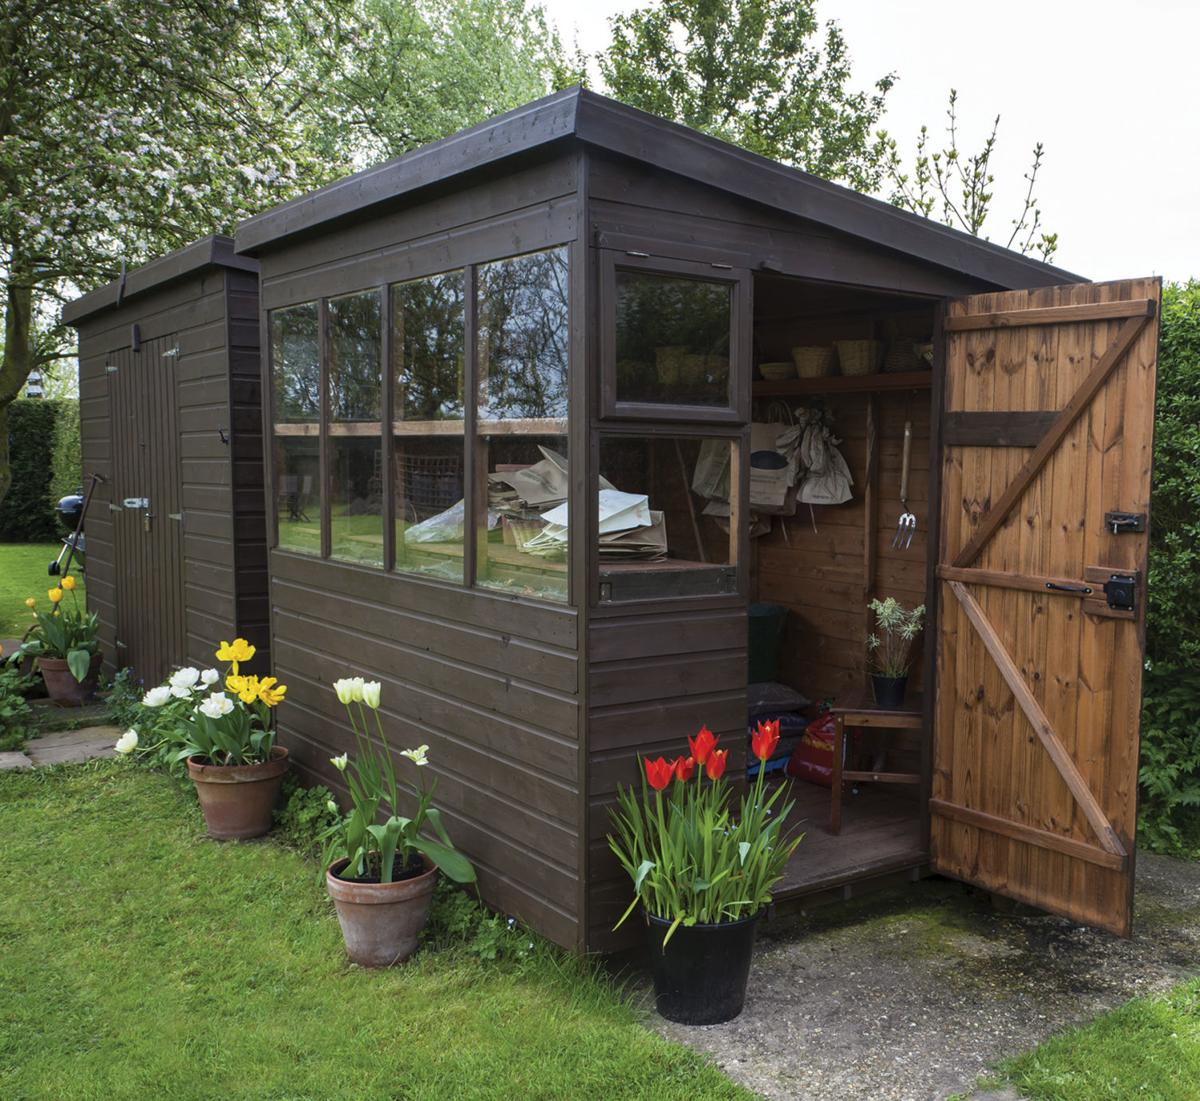 He shed, she shed... | Featured Sections | tctimes.com on greenhouse designs, house barn combo plans, garden shed greenhouse plans, greenhouse made out of old windows, potting shed greenhouse plans, backyard greenhouse shed plans, shed with greenhouse plans,